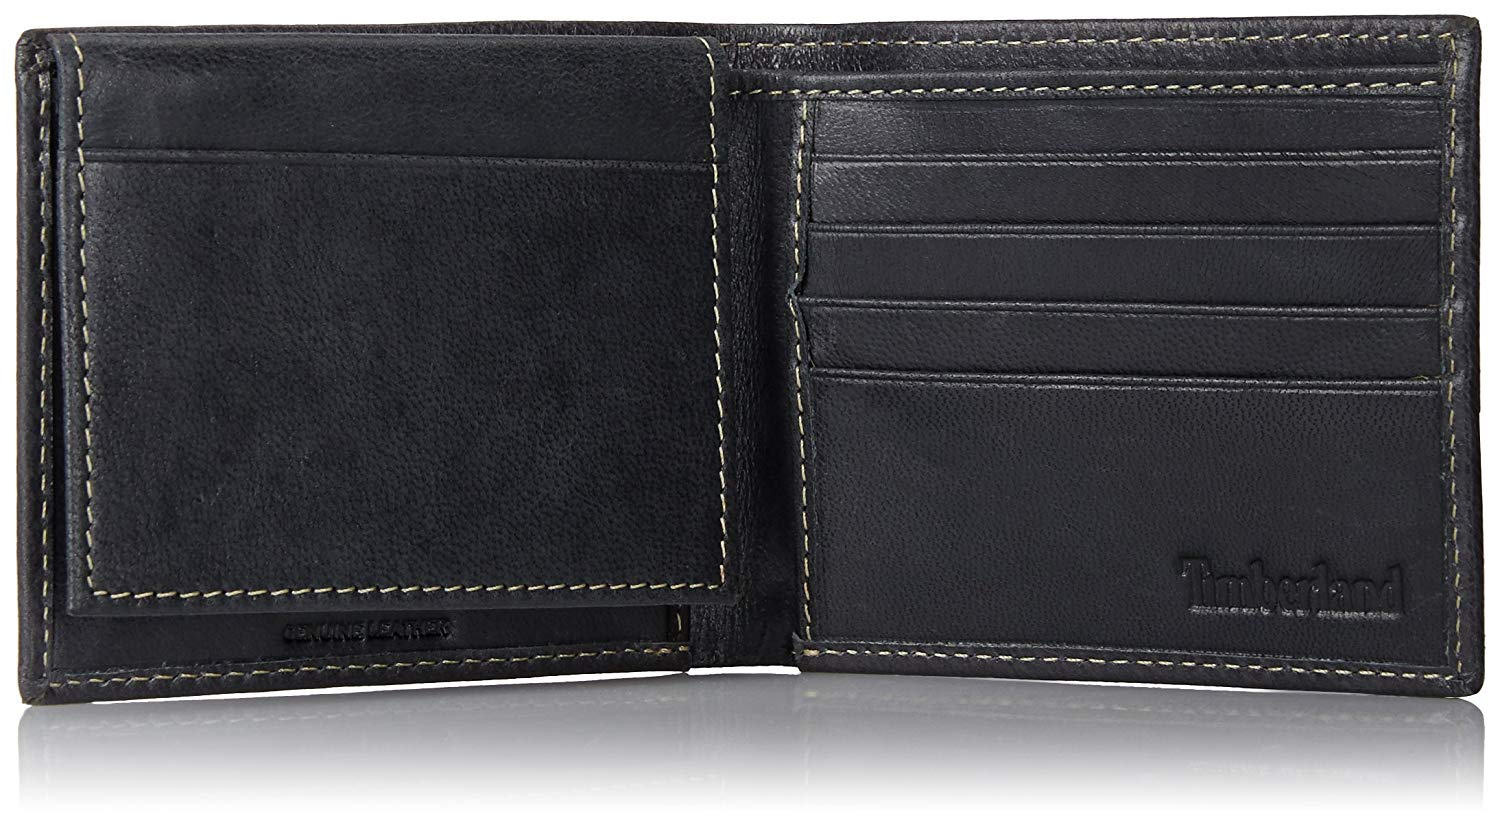 Timberland-Men-039-s-Genuine-Smooth-Leather-Cloudy-Passcase-Wallet thumbnail 9